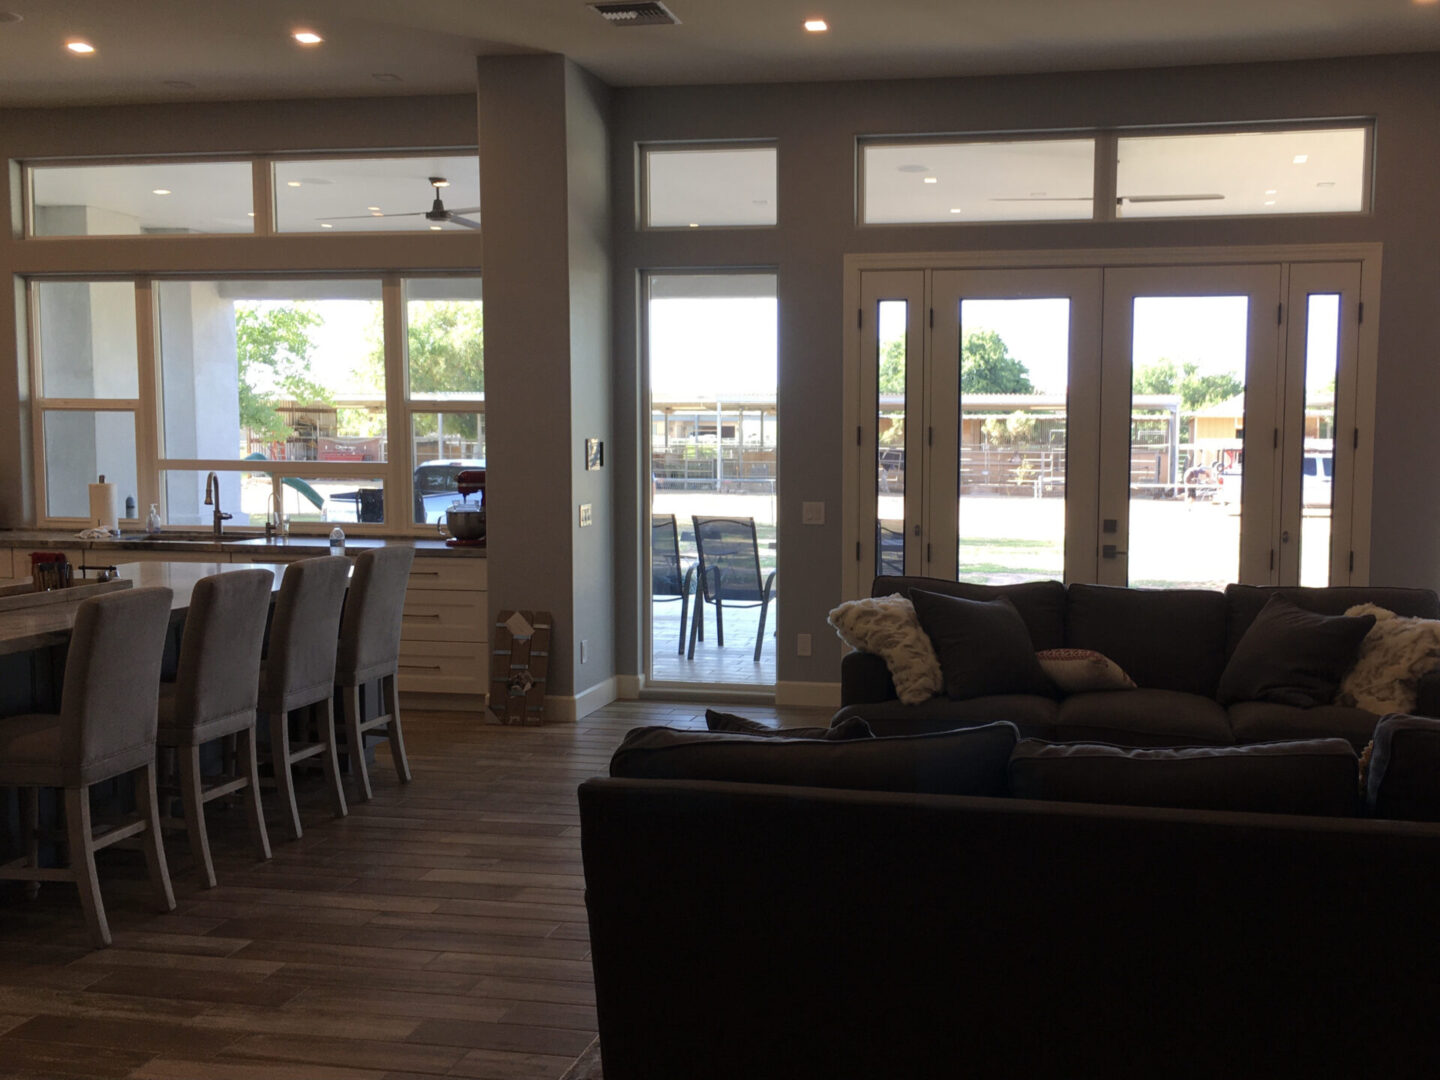 Large glass doors overlooking the outside of a house